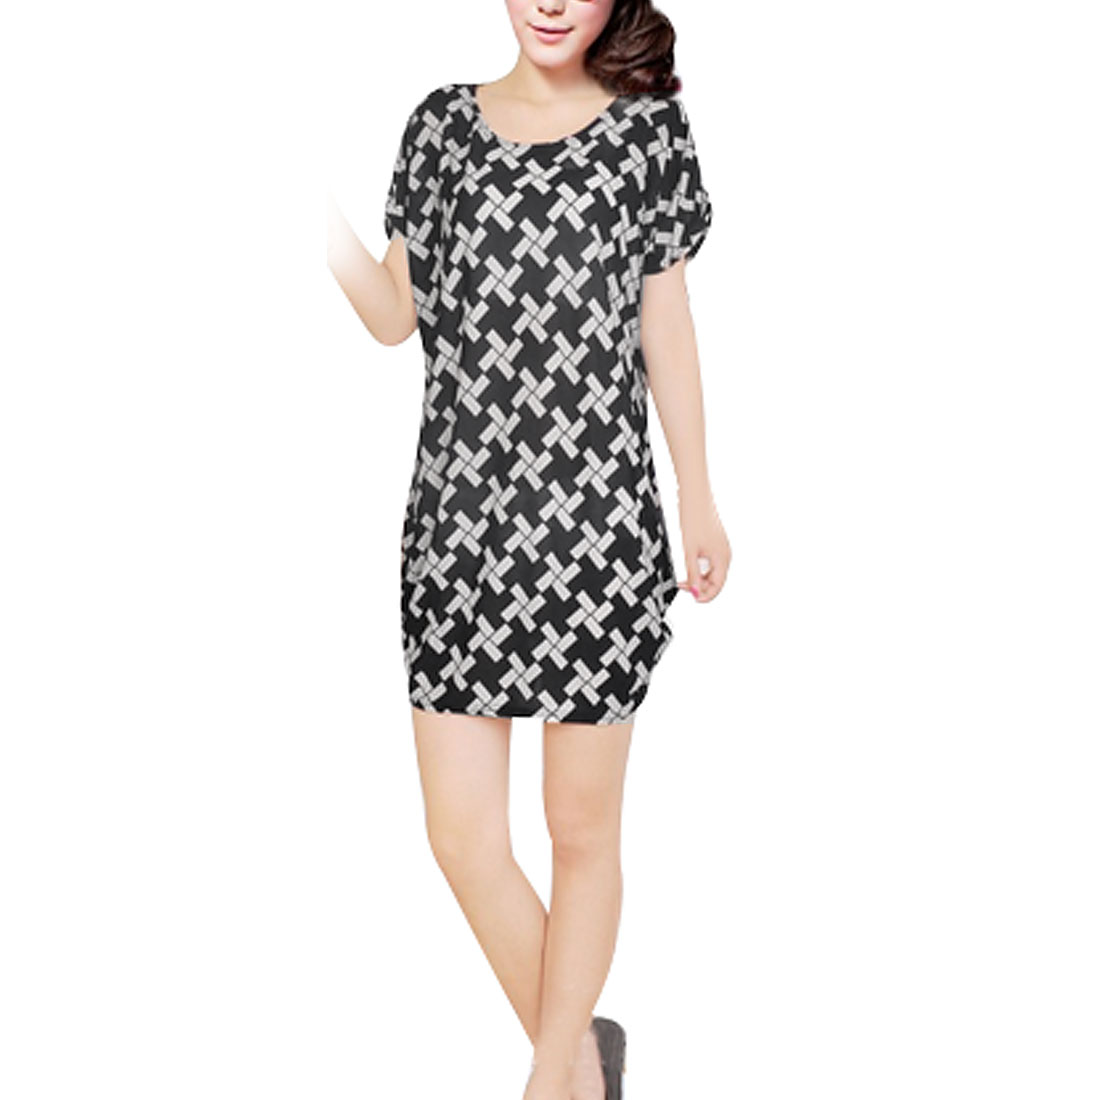 Woman Stylish Round Neck Loose Dress Black White S